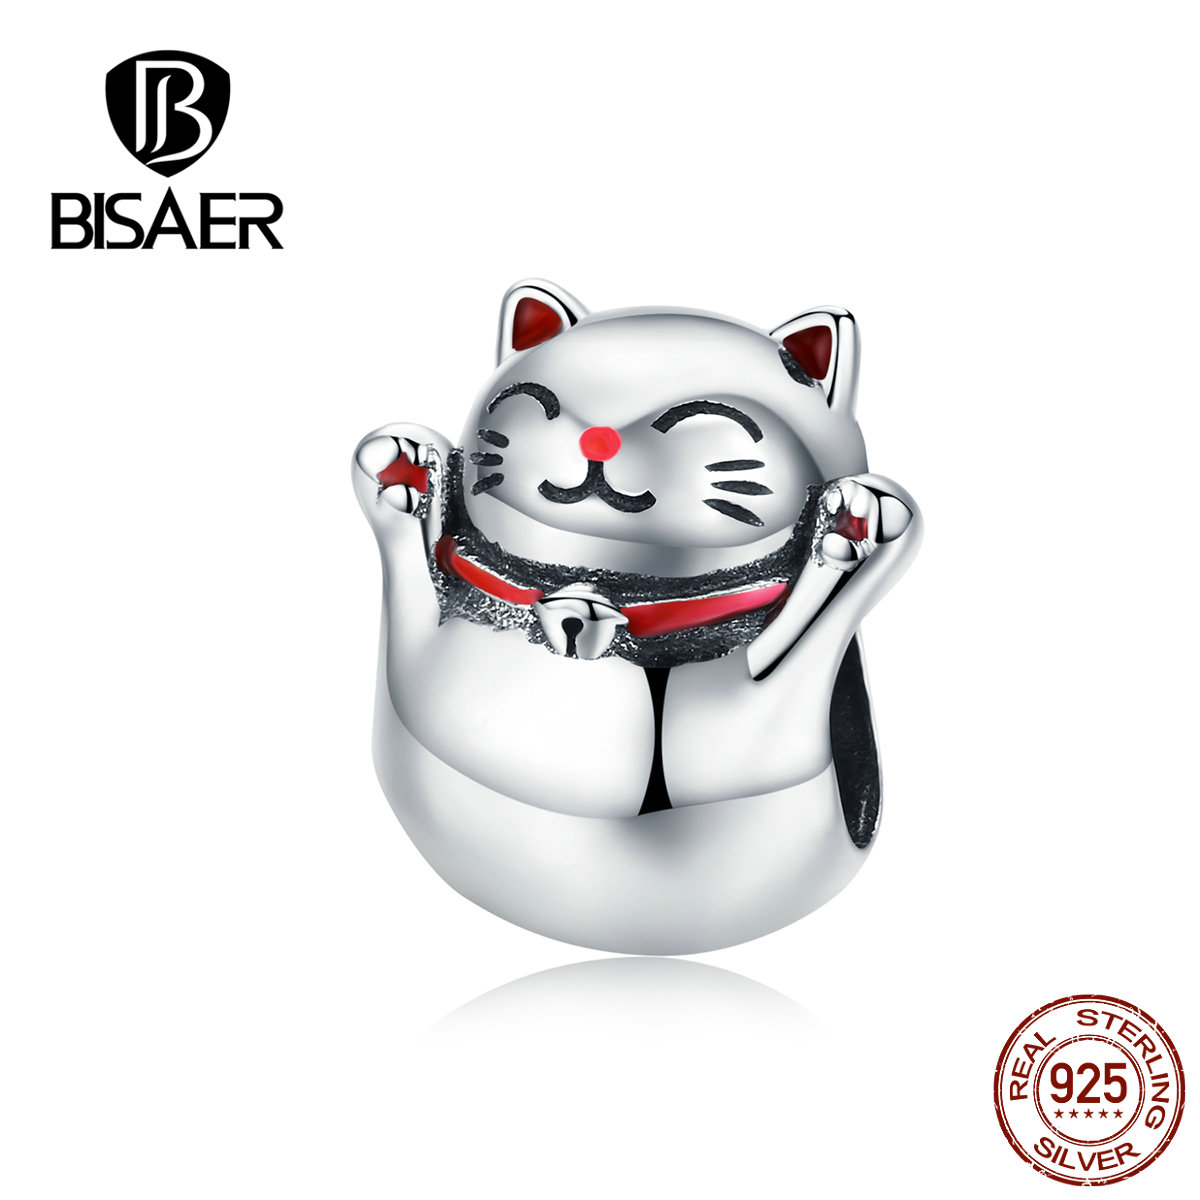 BISAER Cat Beads 925 Sterling Silver Maneki Neko Lucky Plutus Cat Beads Charms fit DIY Bracelets Silver 925 Jewelry ECC1178 in Beads from Jewelry Accessories